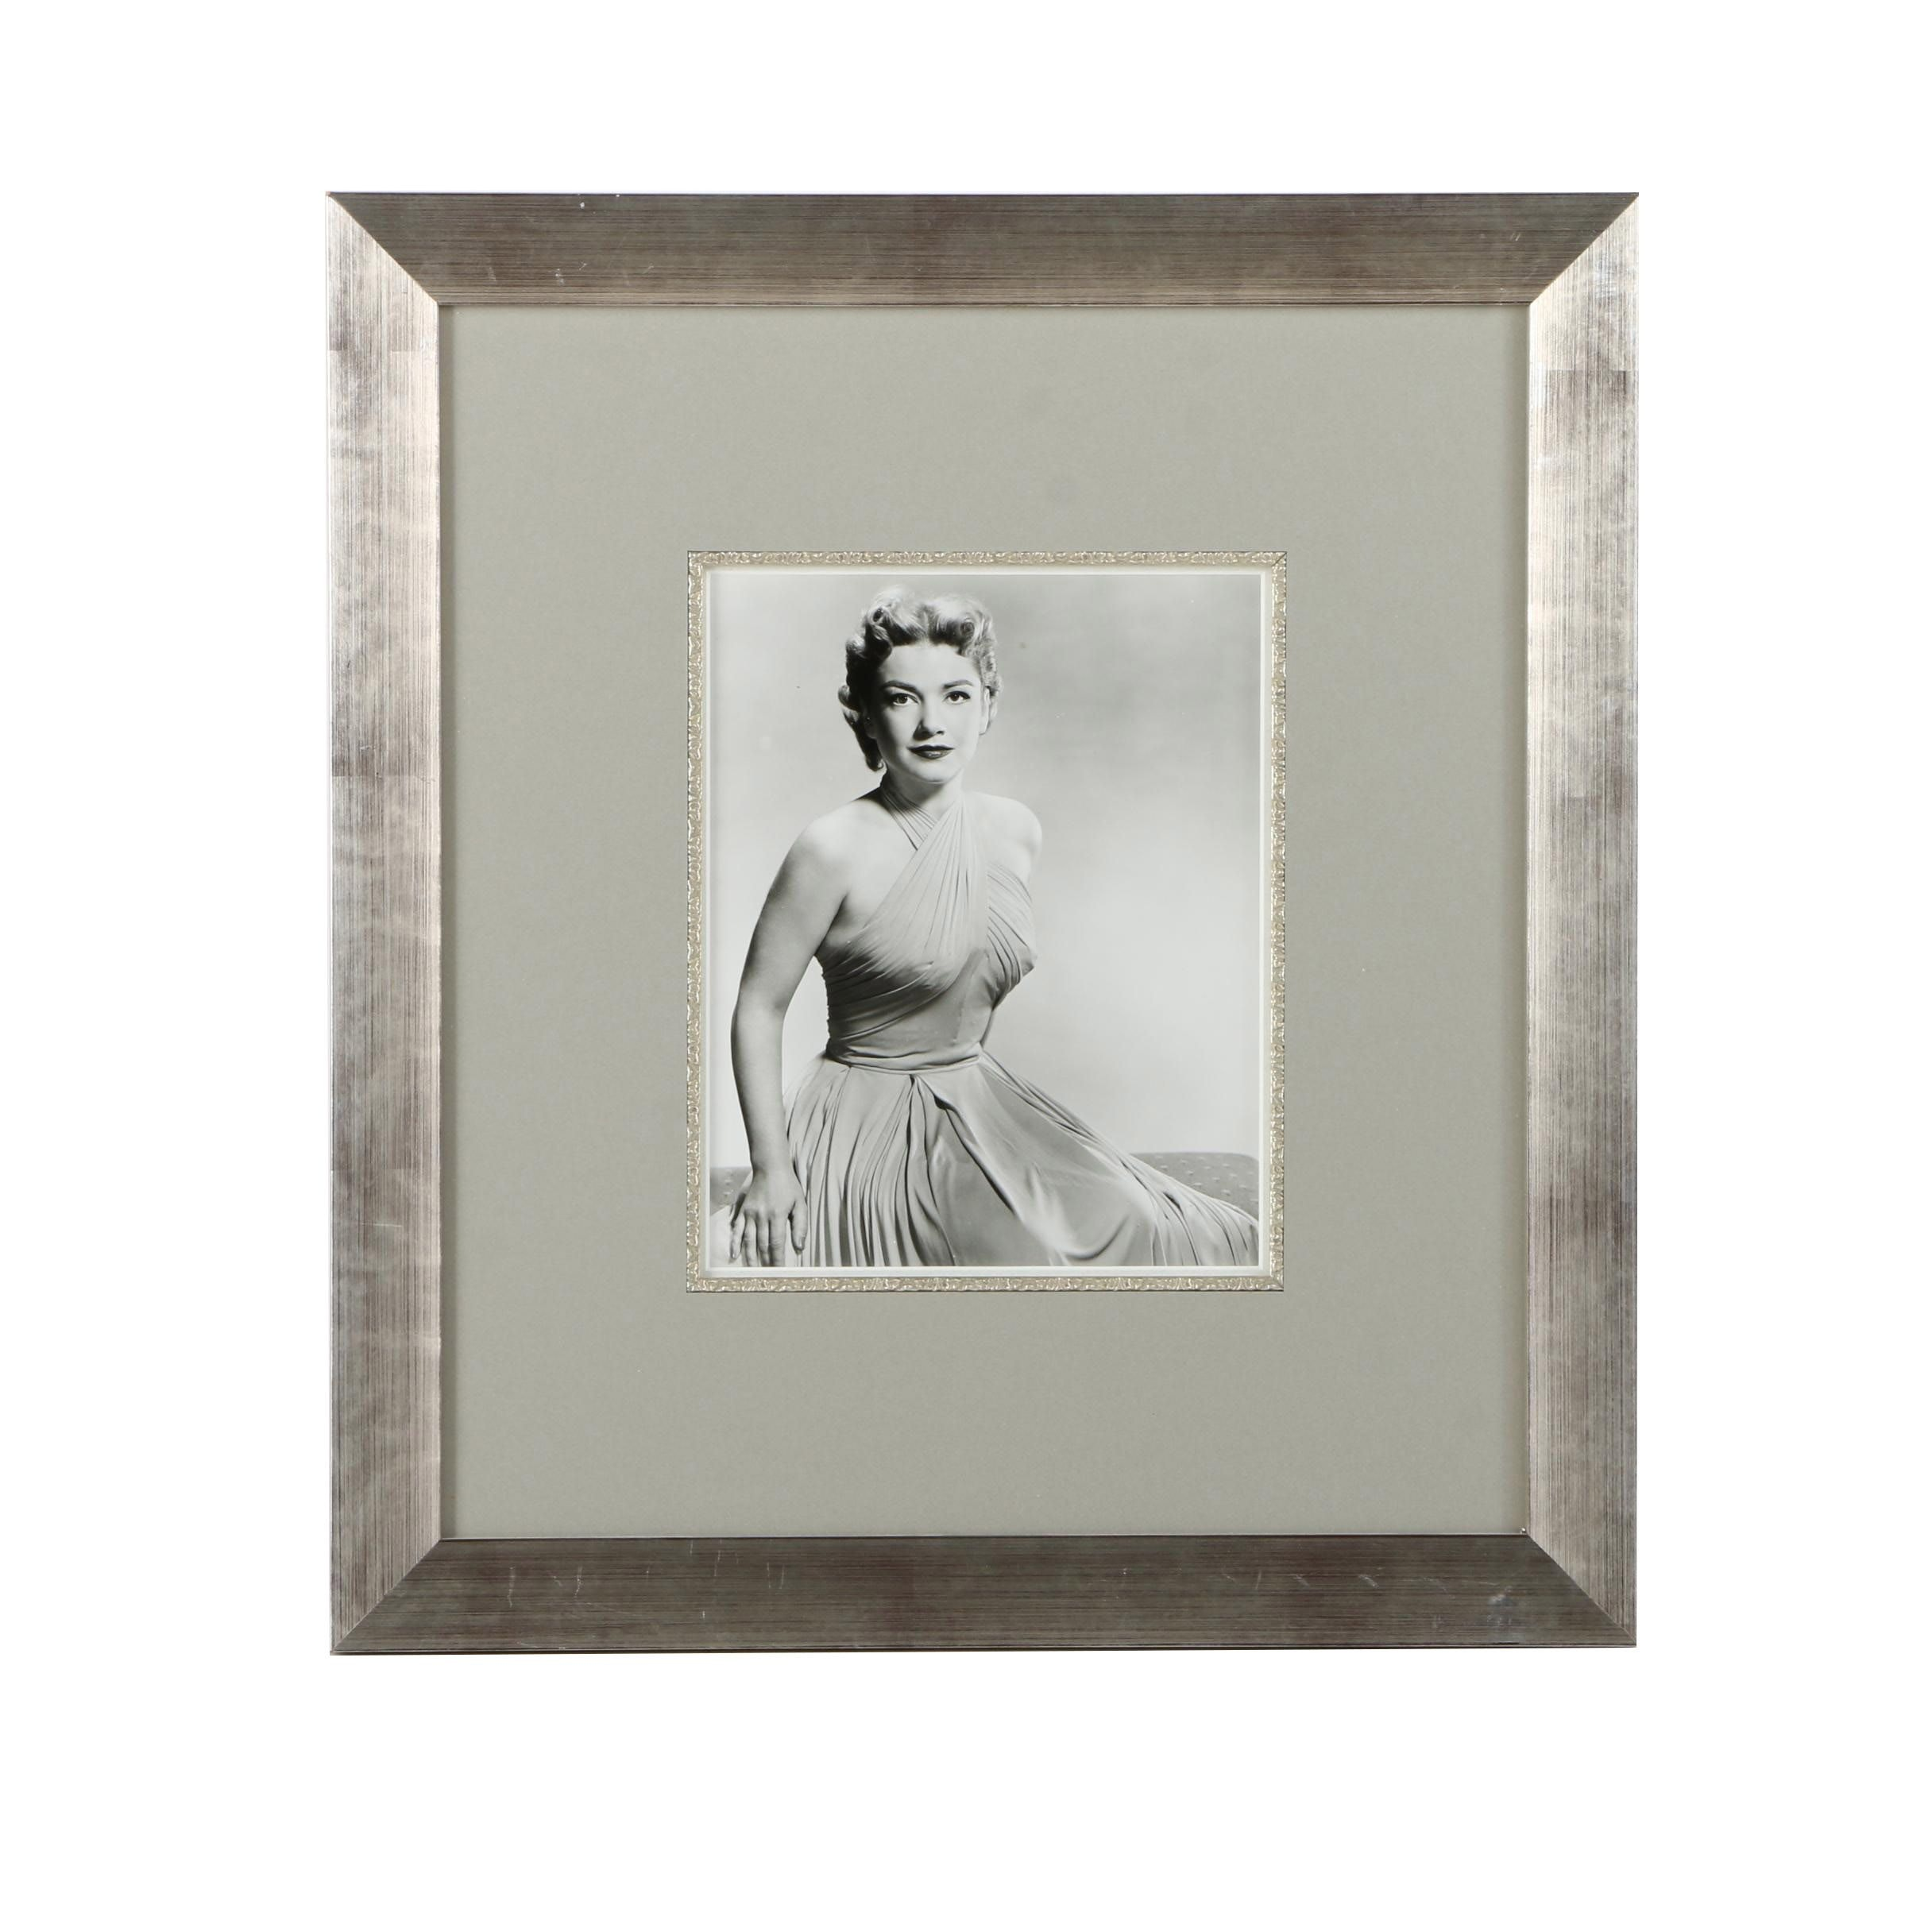 Framed Black and White Photographic Print of Actress Anne Baxter